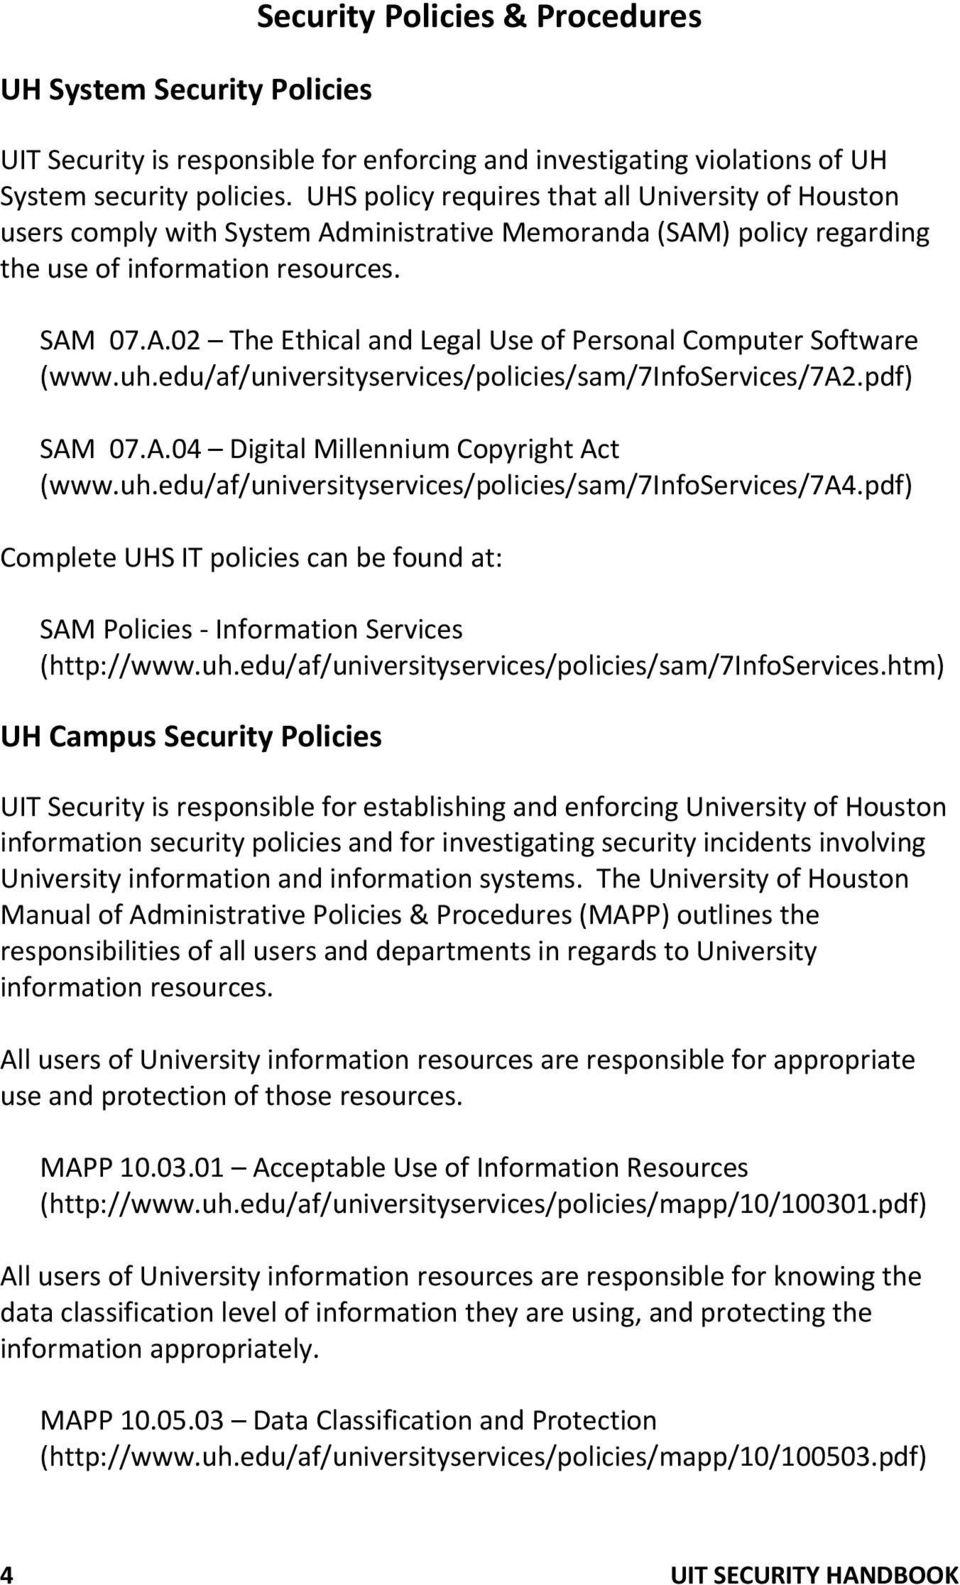 uh.edu/af/universityservices/policies/sam/7infoservices/7a2.pdf) SAM 07.A.04 Digital Millennium Copyright Act (www.uh.edu/af/universityservices/policies/sam/7infoservices/7a4.